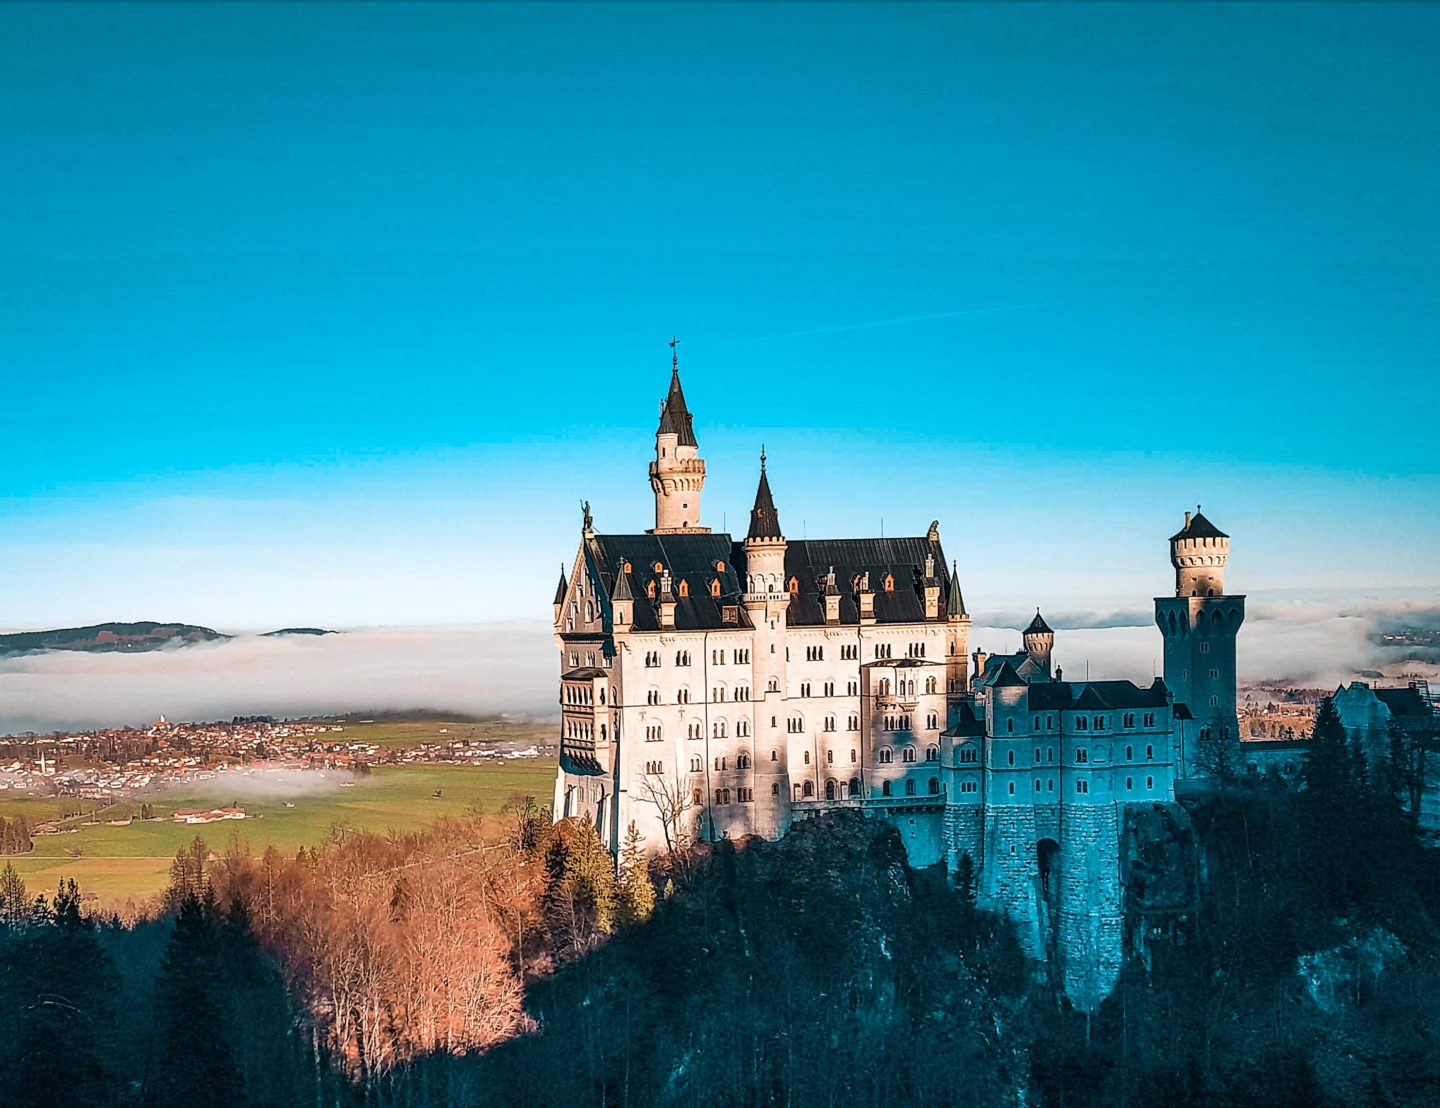 View of the Neuschwanstein Castle